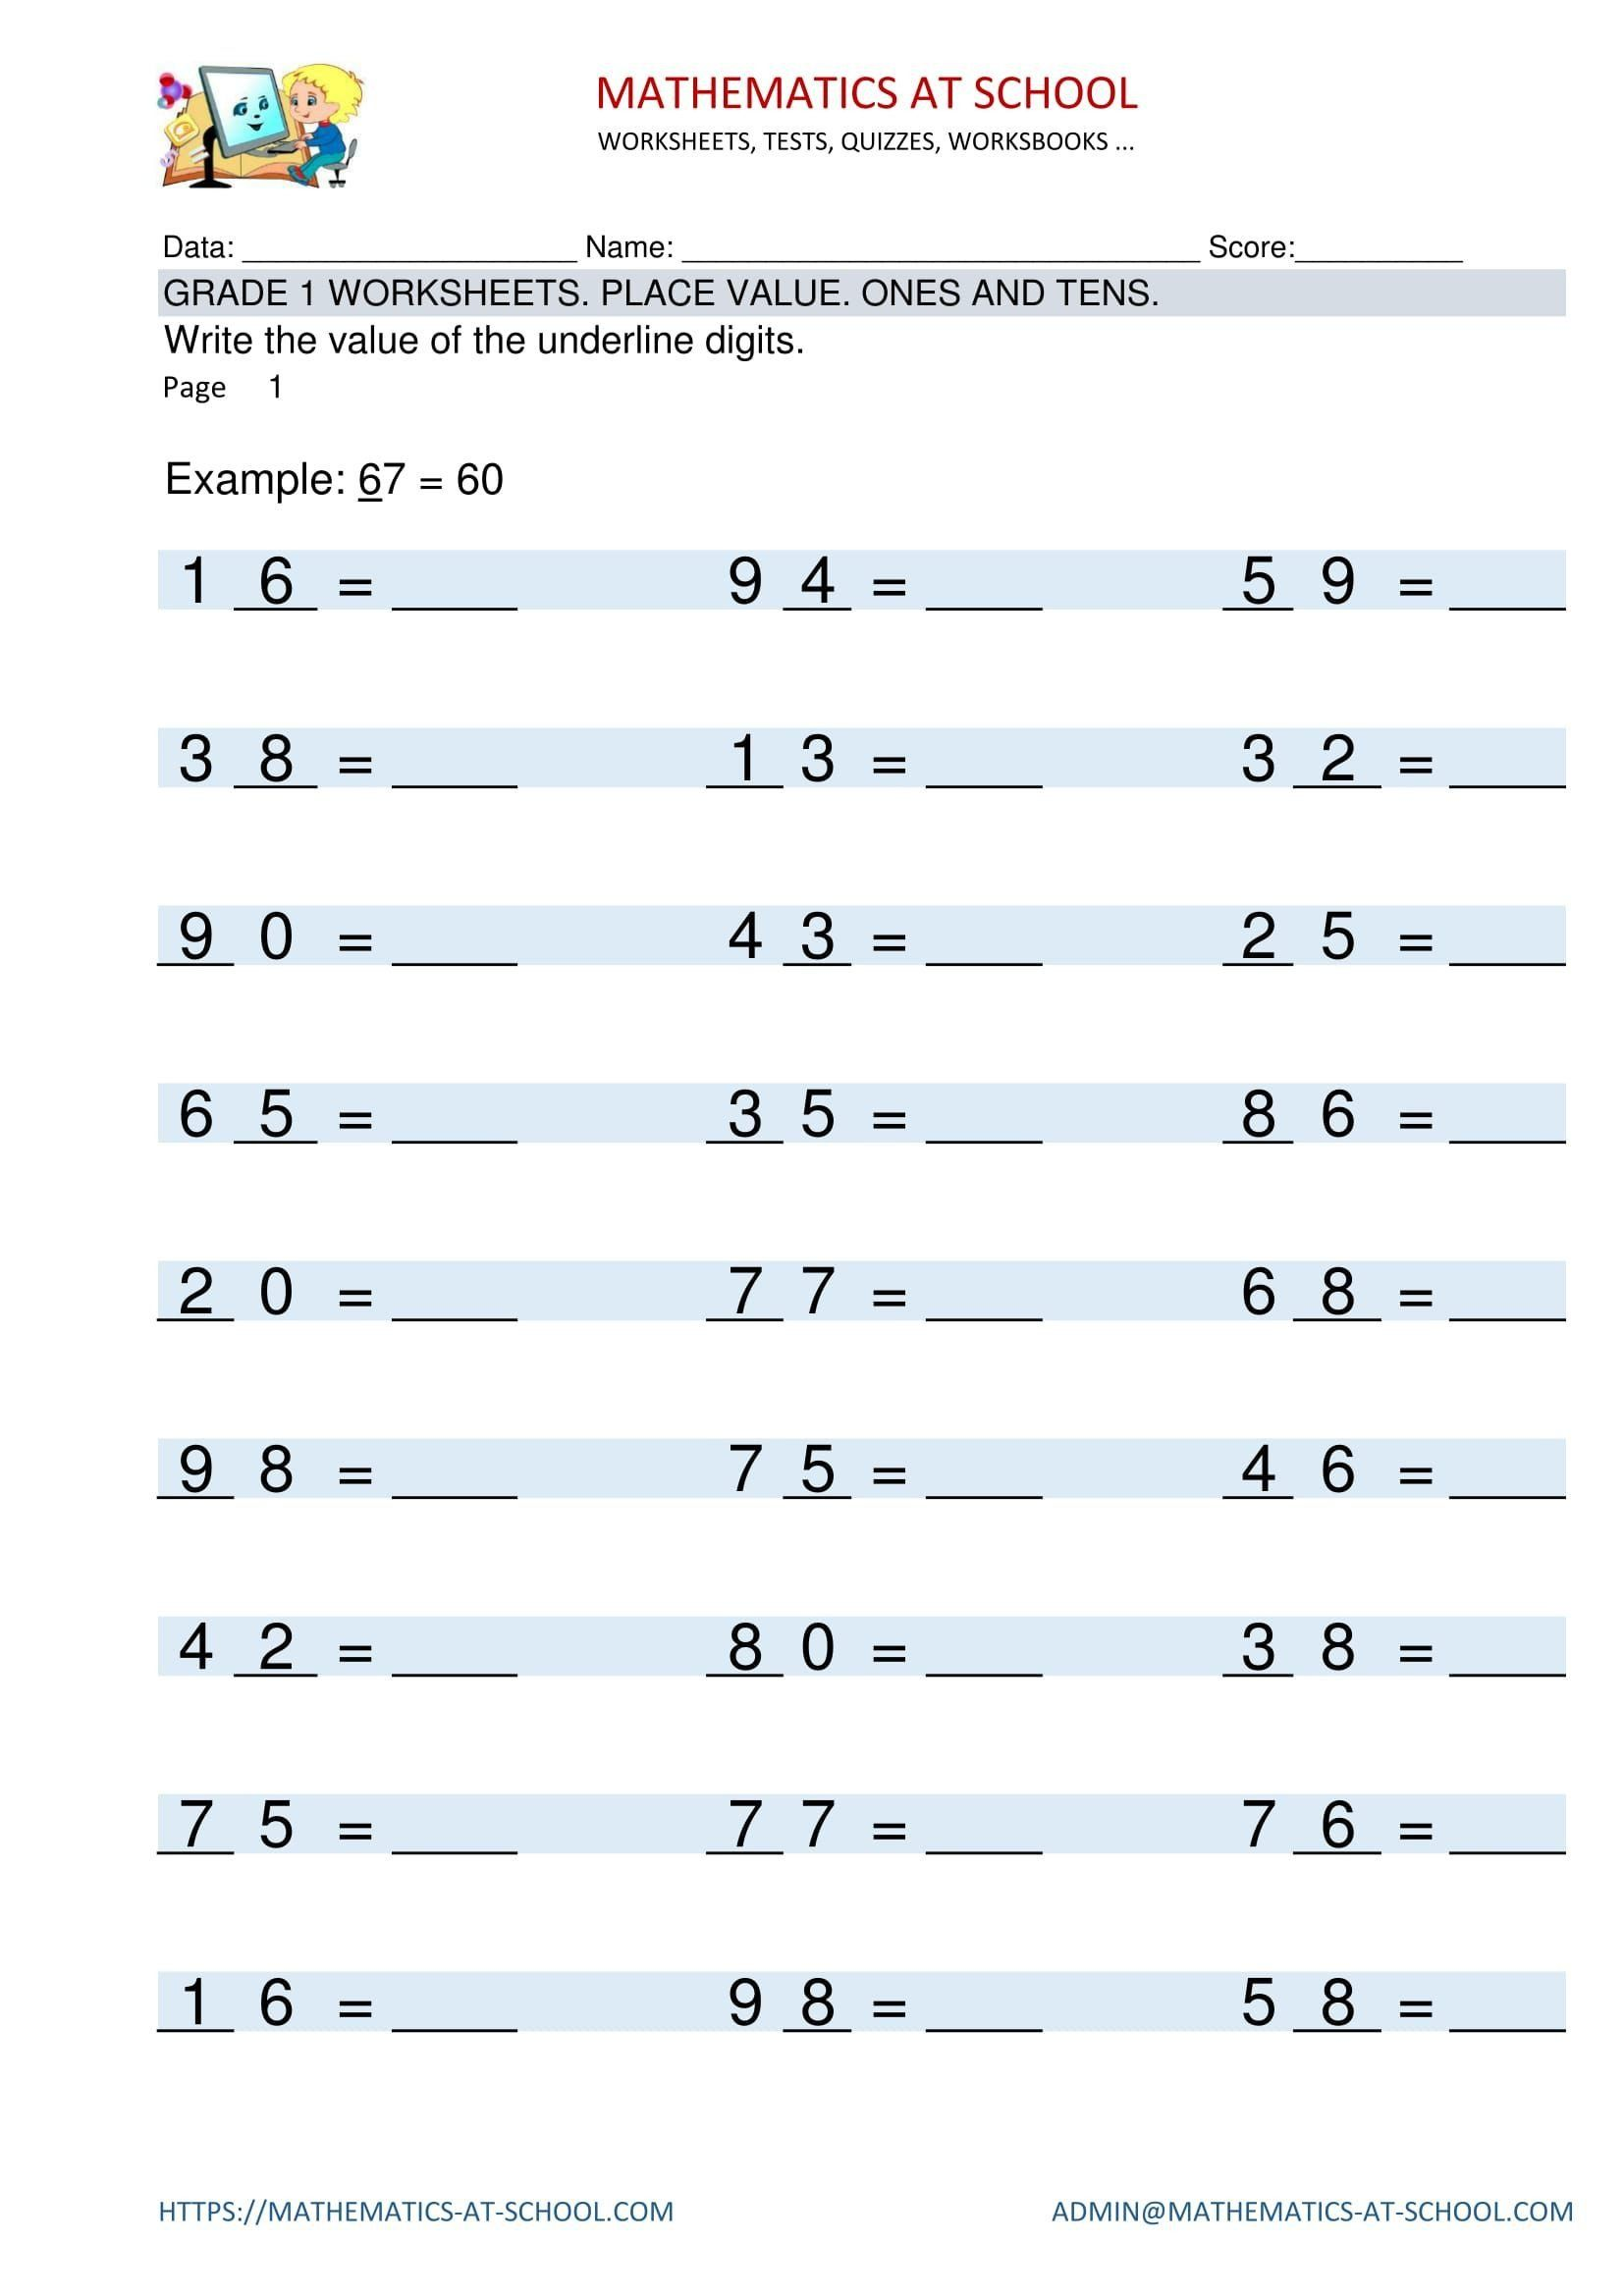 Measurement Worksheet Grade 1 Grade 1 Worksheets Place